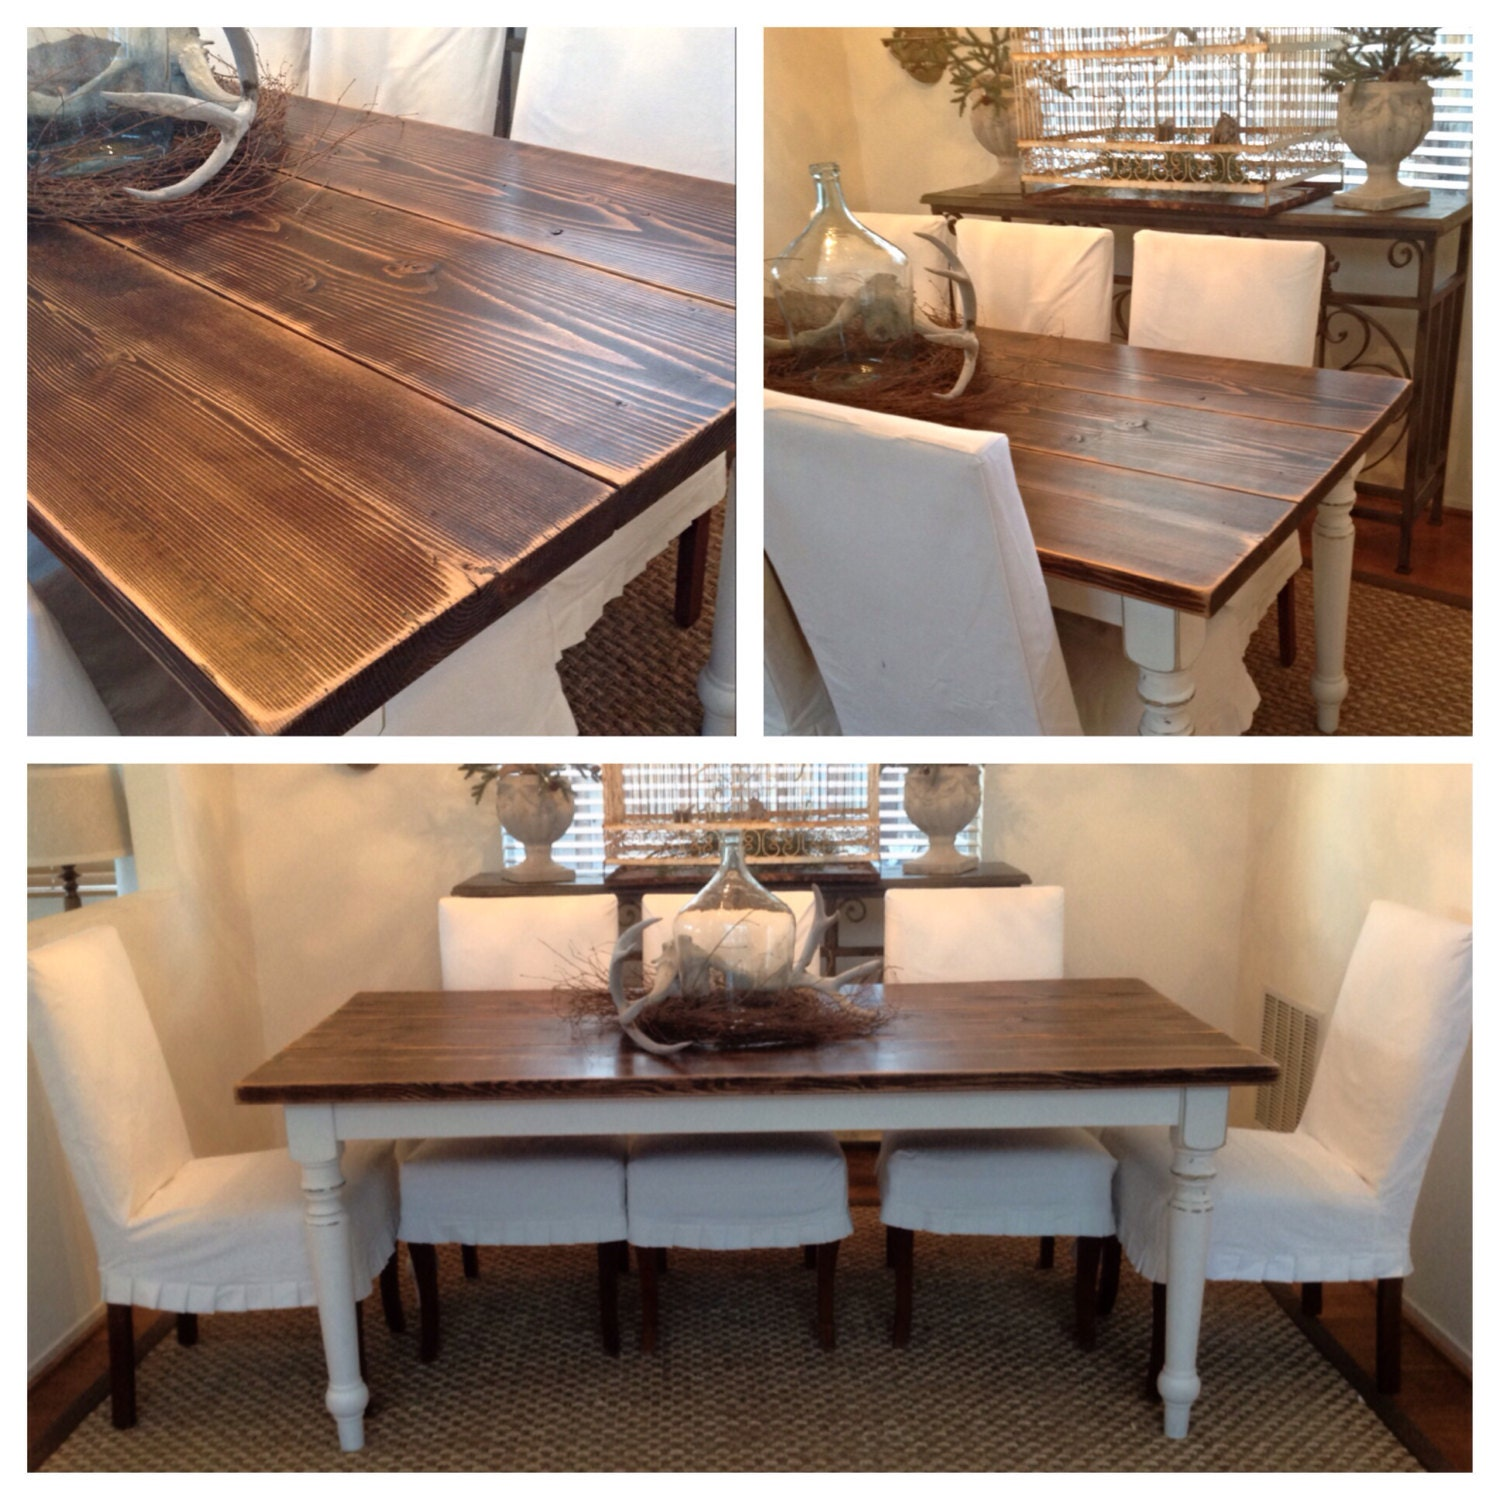 CUSTOM French Farmhouse Table FREE by TimewornInteriorsInc on Etsy